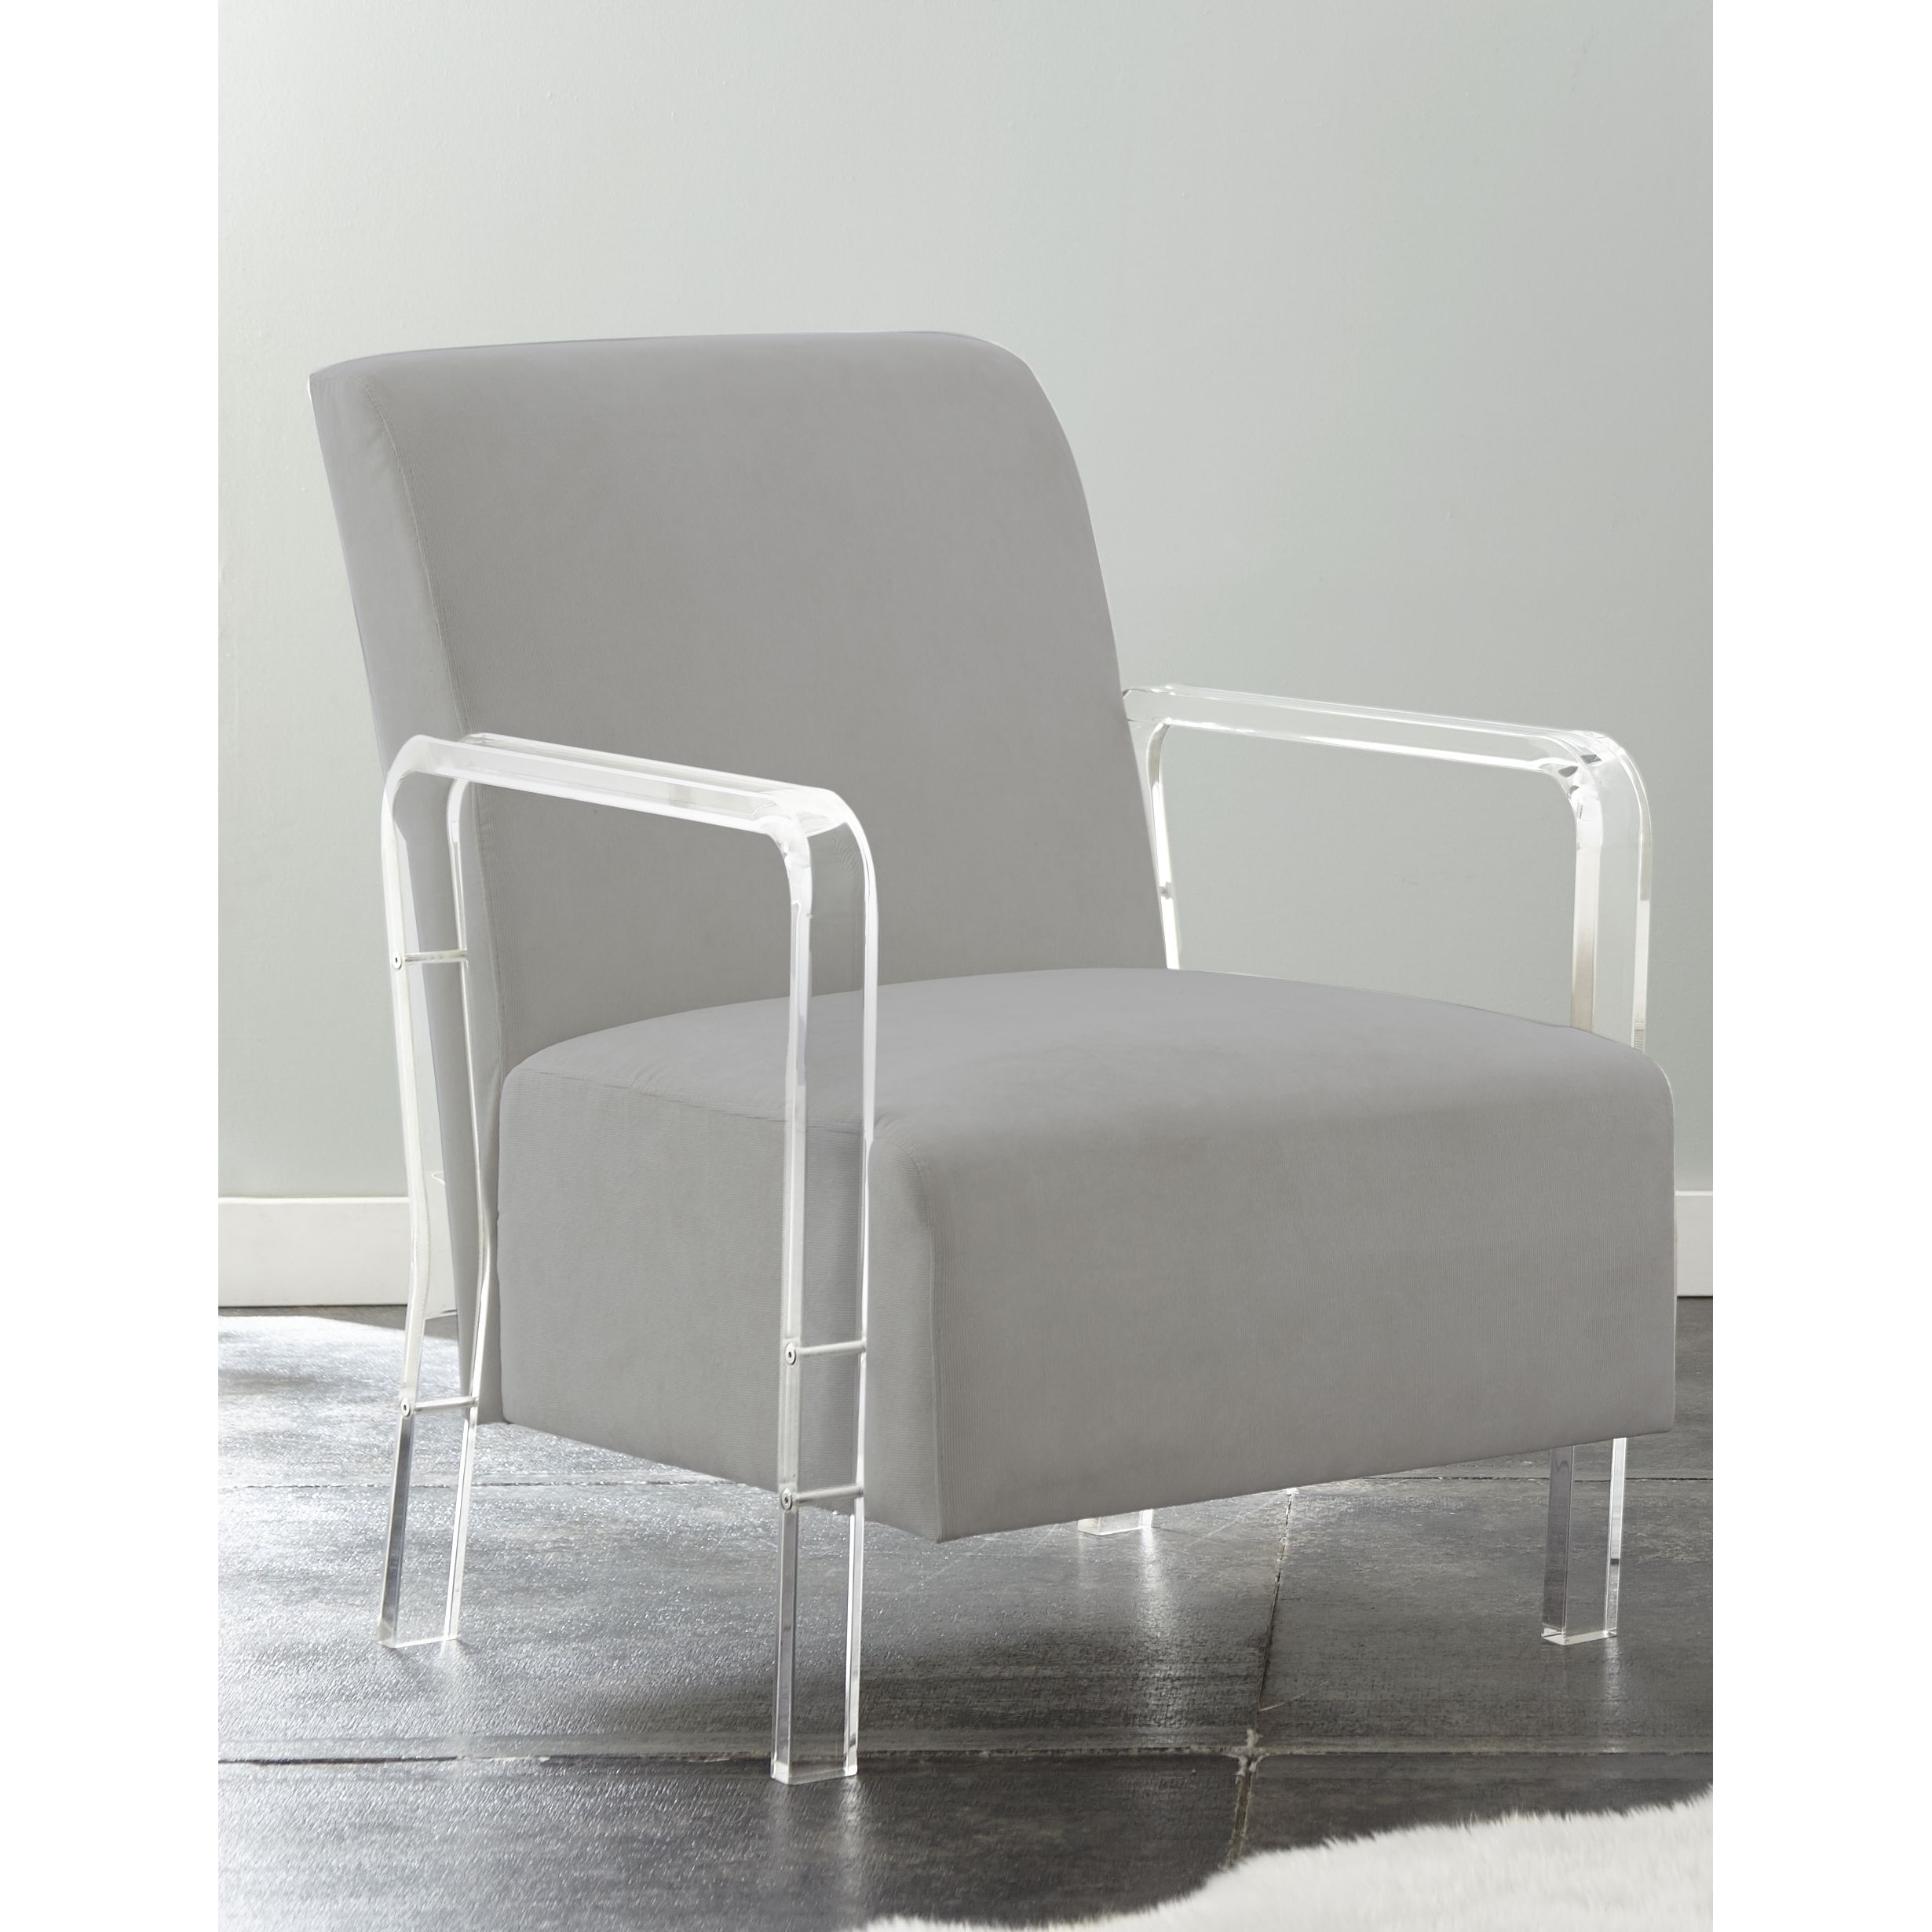 Arm Chairs Truitt Acrylic And Microfiber Arm Chair By Greyson Living